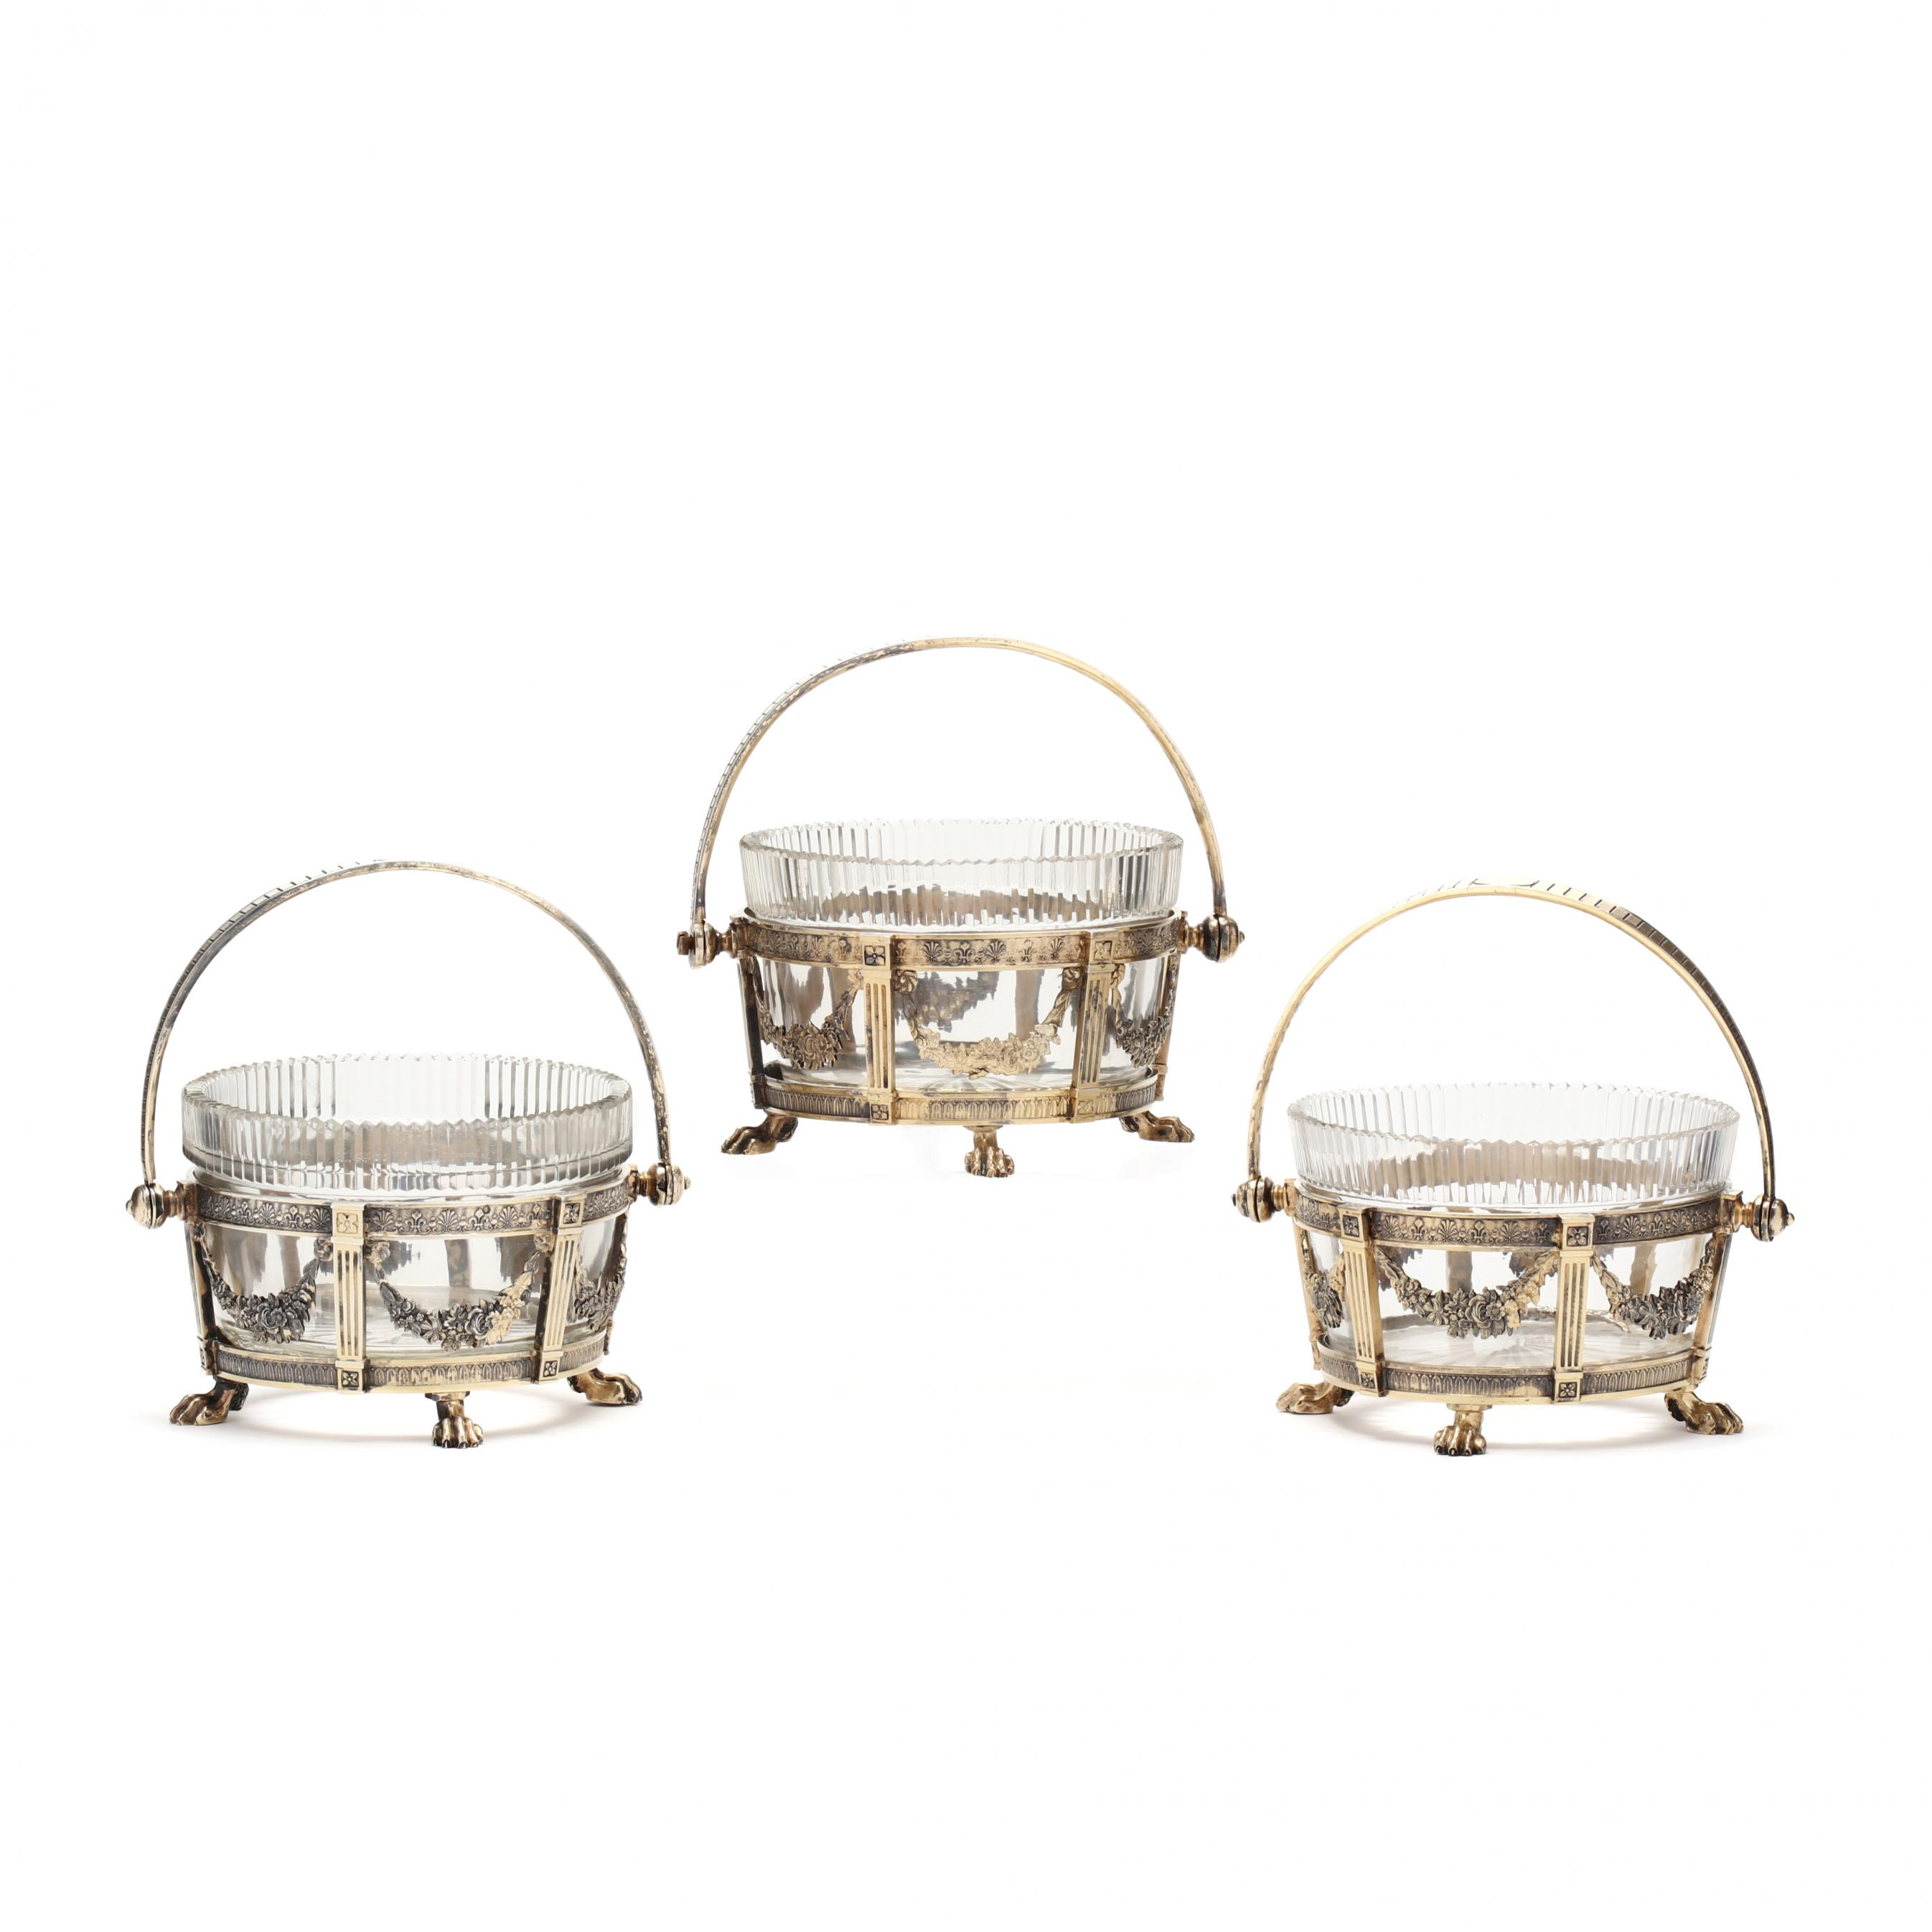 three-russian-silver-baskets-with-glass-liners-mark-of-ovchinnikov